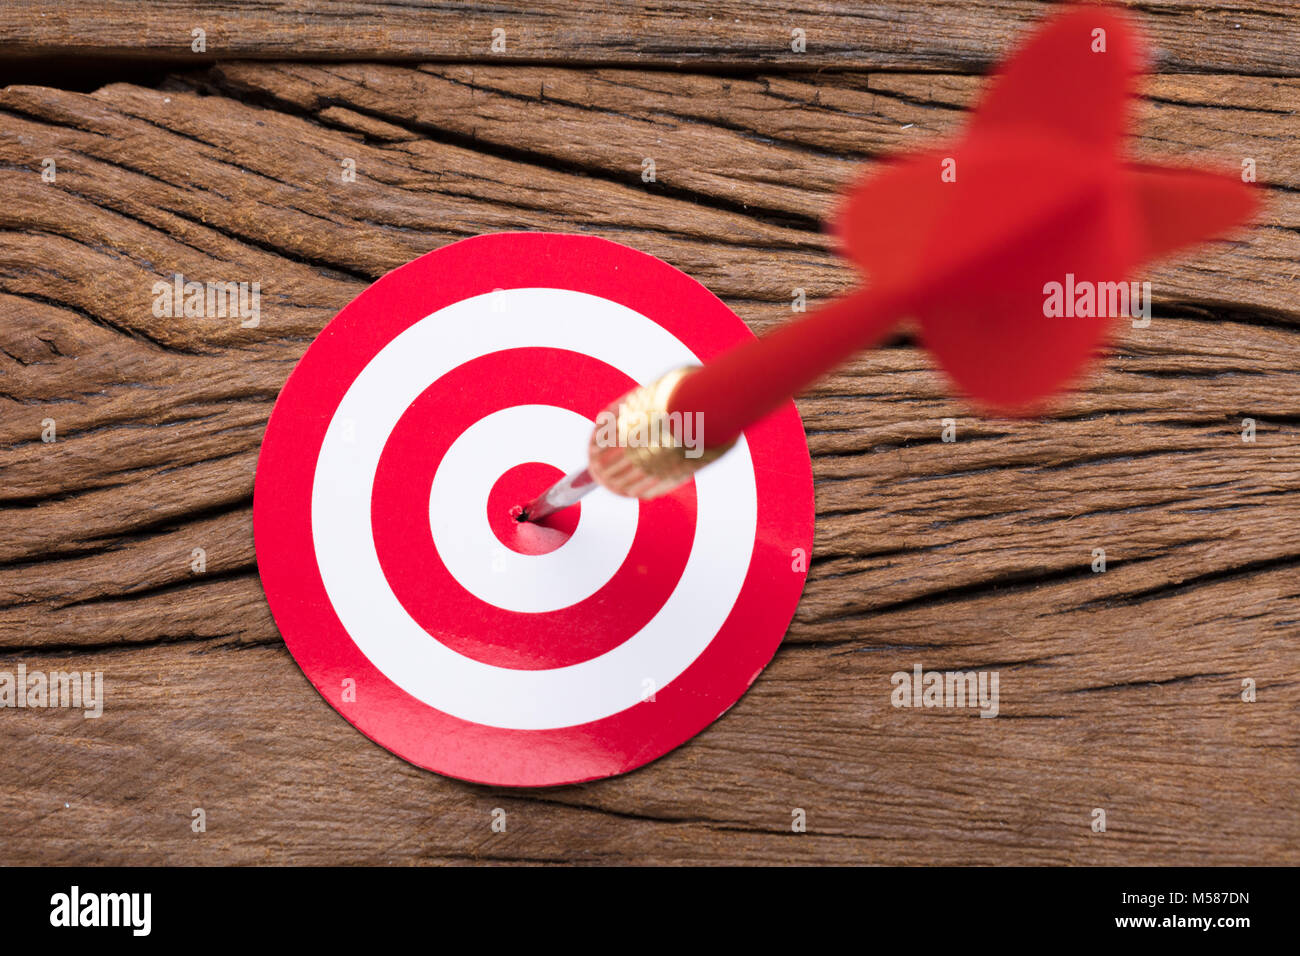 Closeup of red arrow in dartboard on wooden table - Stock Image